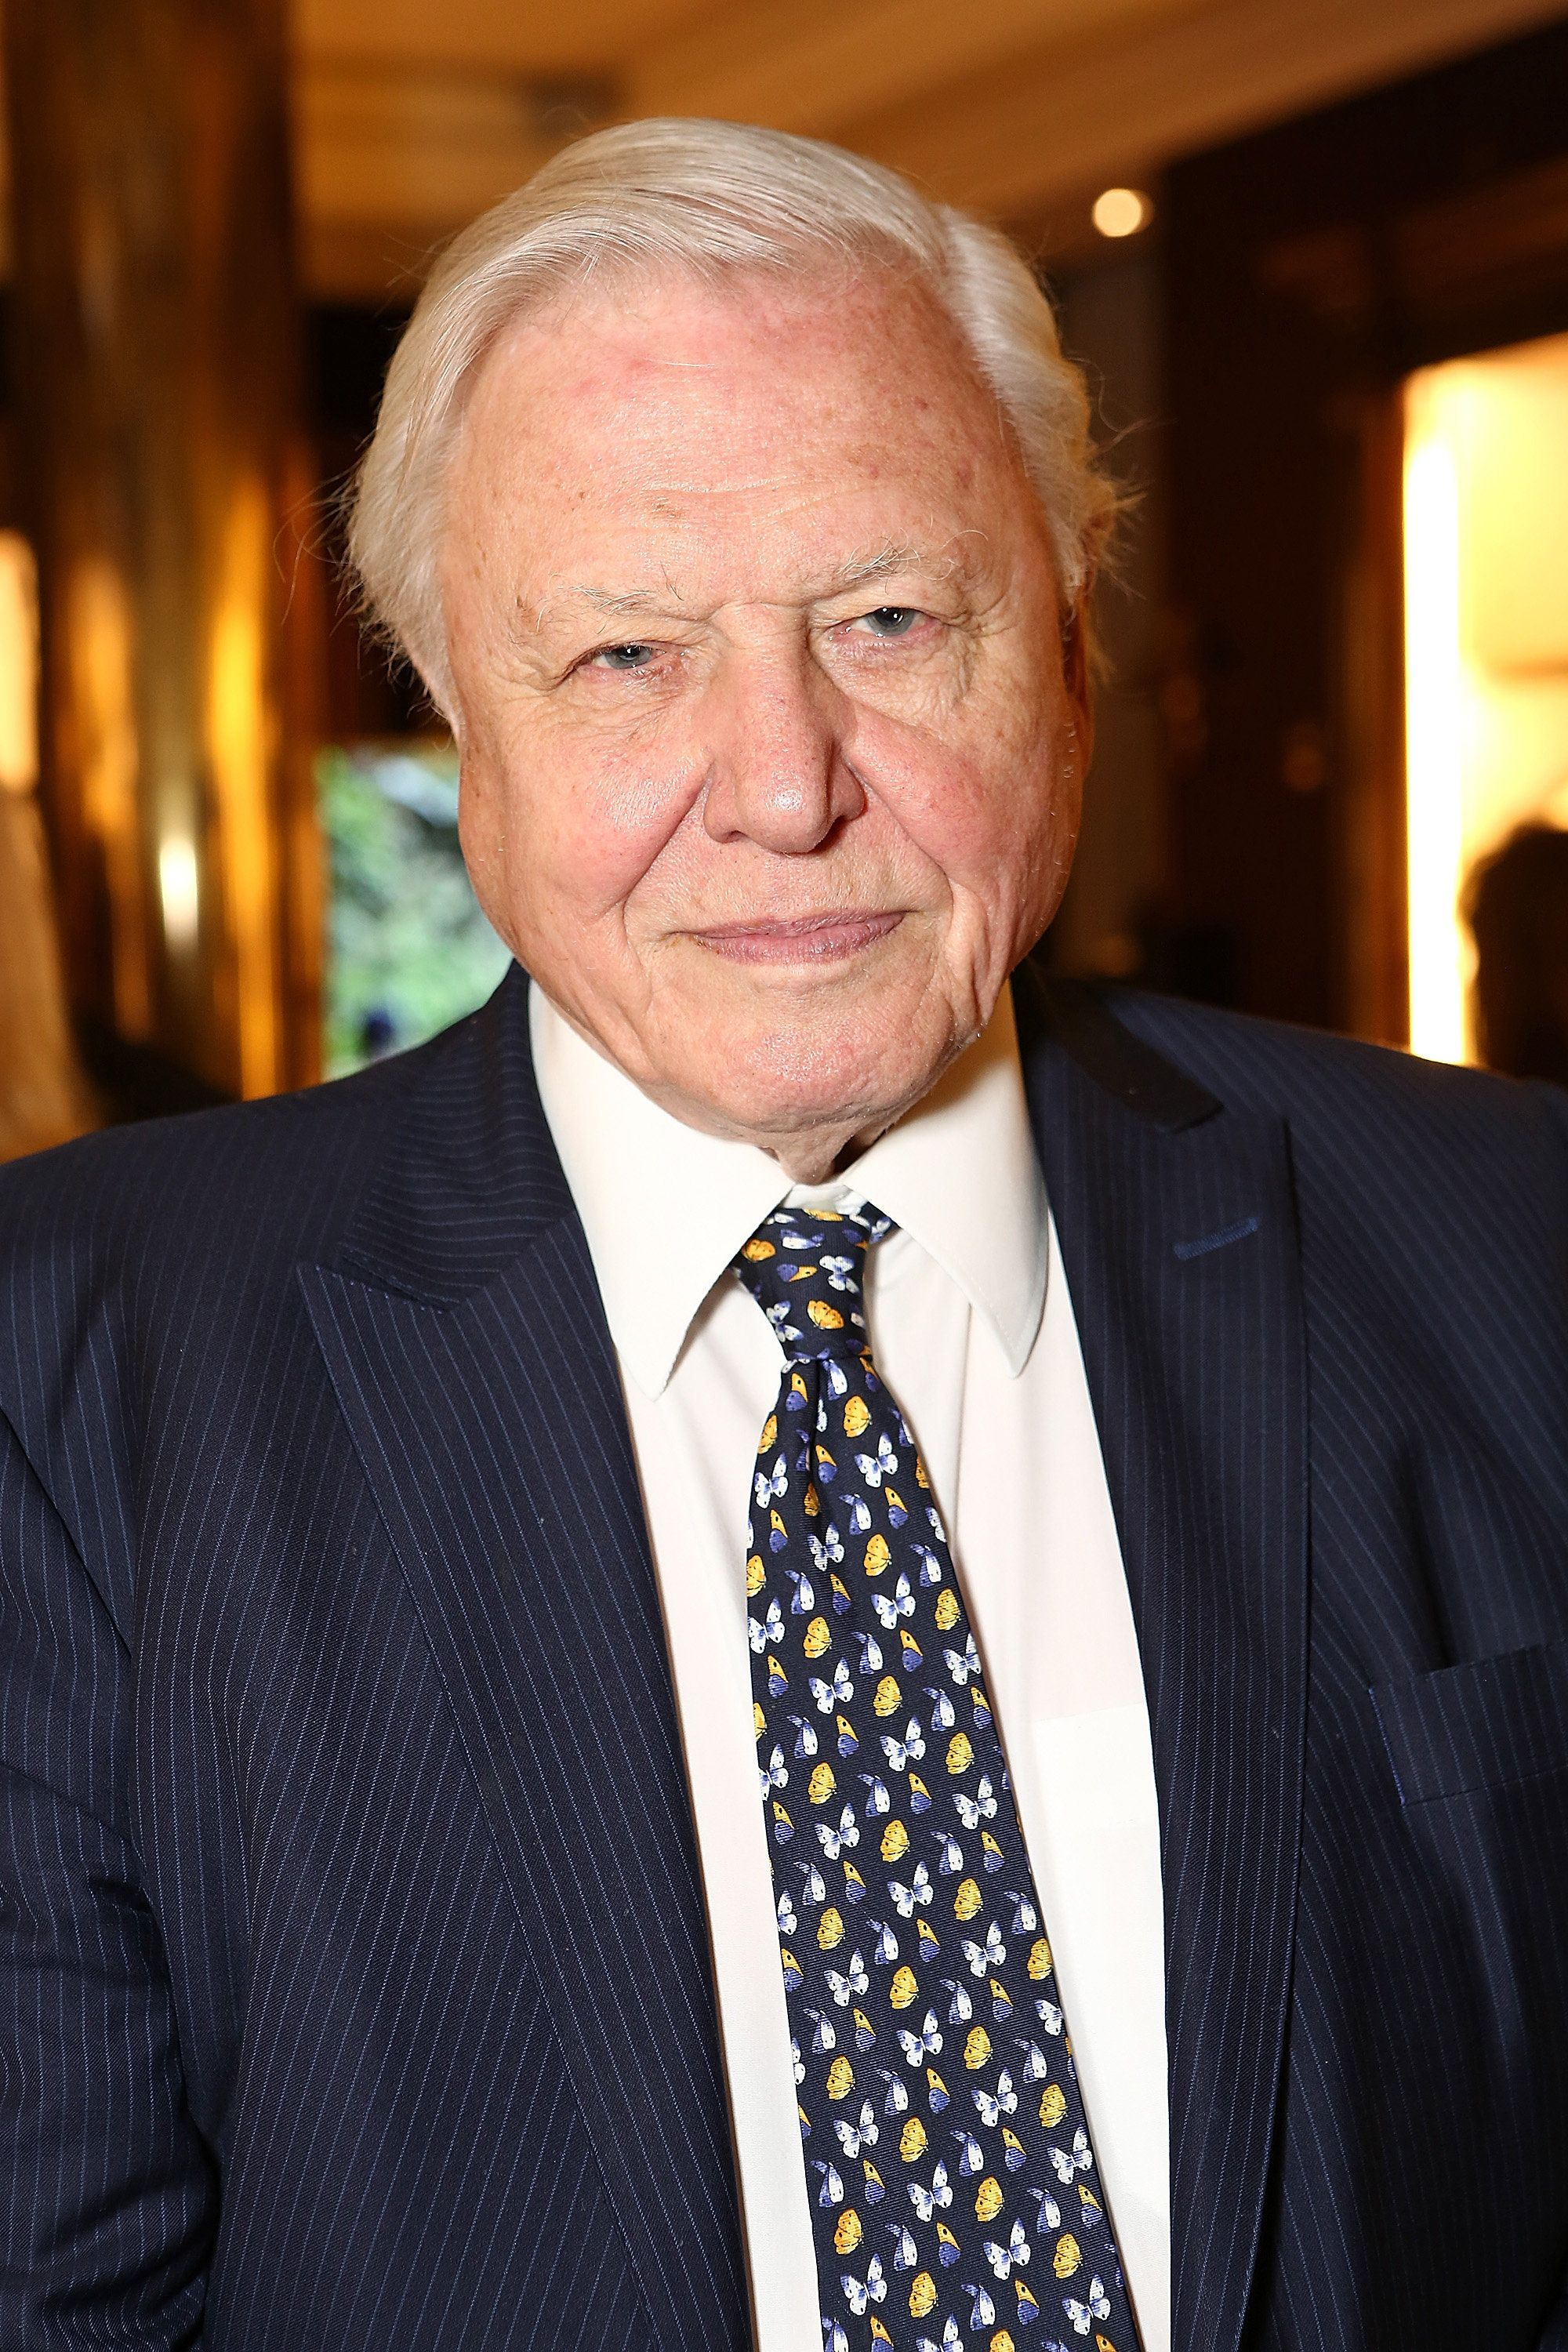 LONDON, ENGLAND - SEPTEMBER 22:  Sir David Attenborough attends The World Land Trust screening of 'The Orchids of Banos' supported by Alfred Dunhill on September 22, 2015 in London, England.  (Photo by David M. Benett/Dave Benett/Getty Images for Alfred Dunhill Ltd)